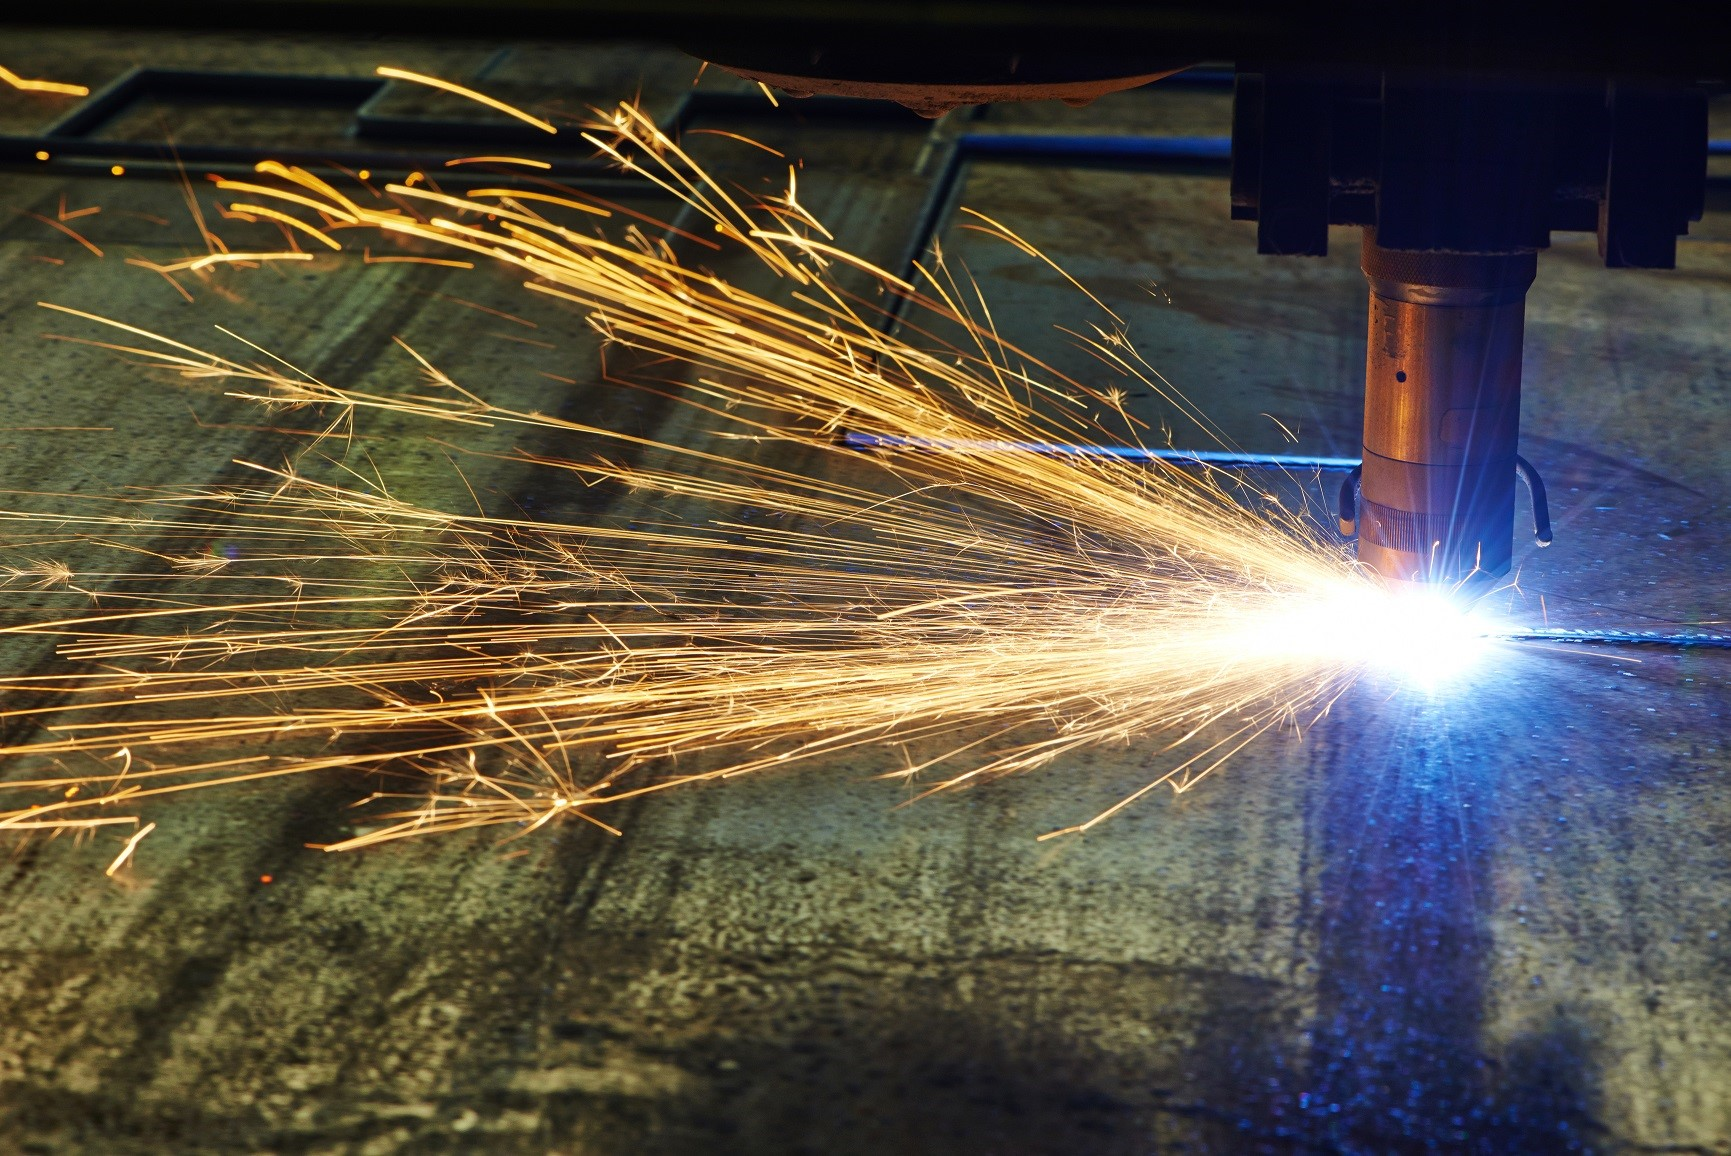 Architectural-Industrial-Metal-Finishing-Laser-Cutting-3